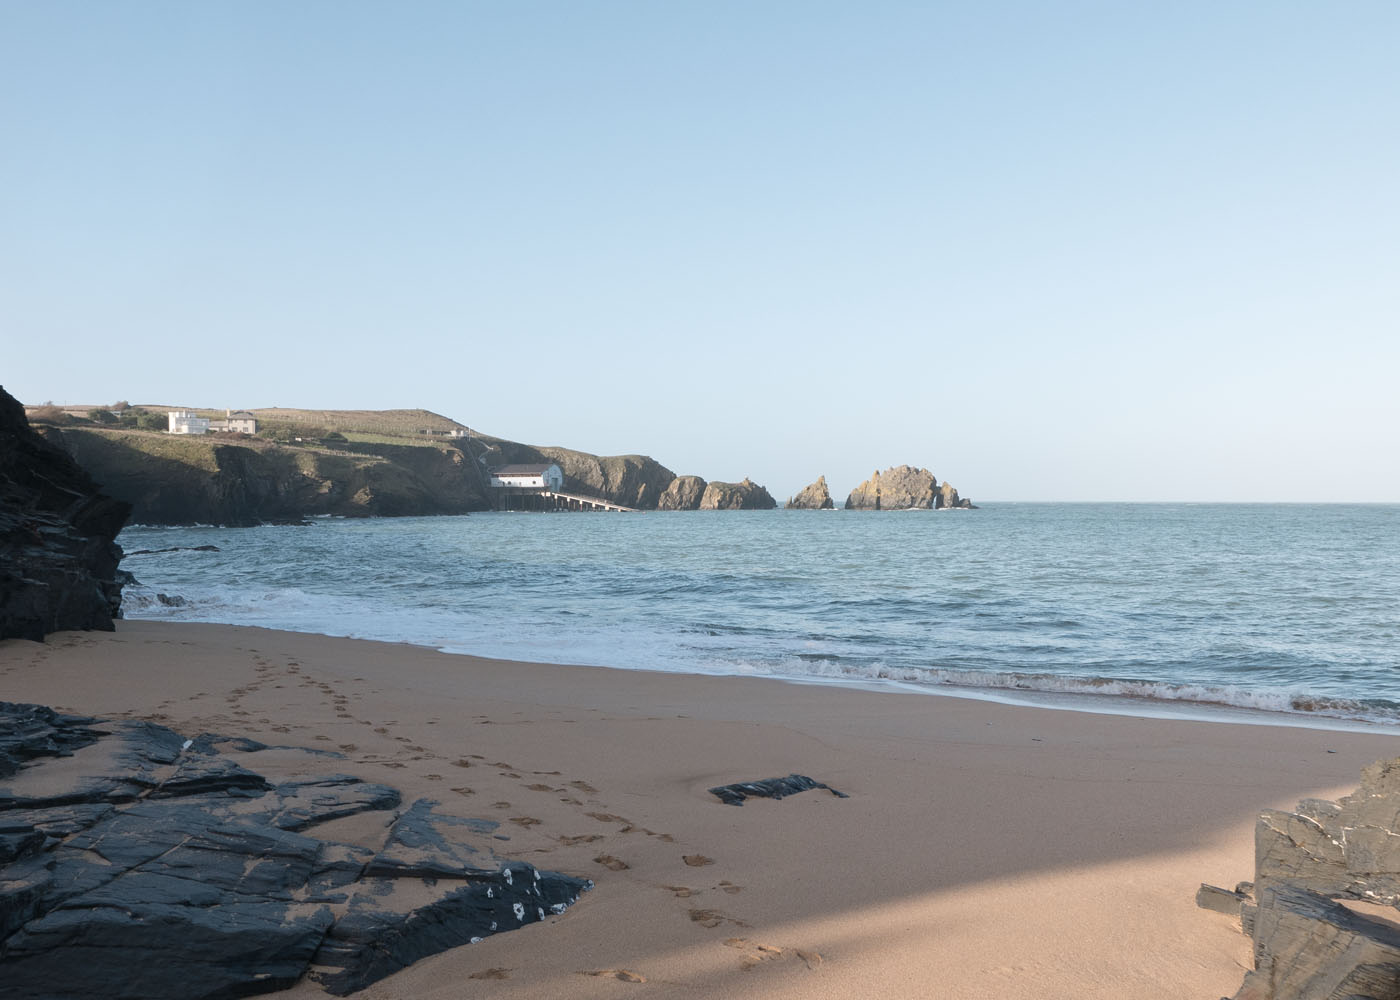 An empty Mother Iveys Bay beach looking towards the Padstow RNLI Lifeboat Station